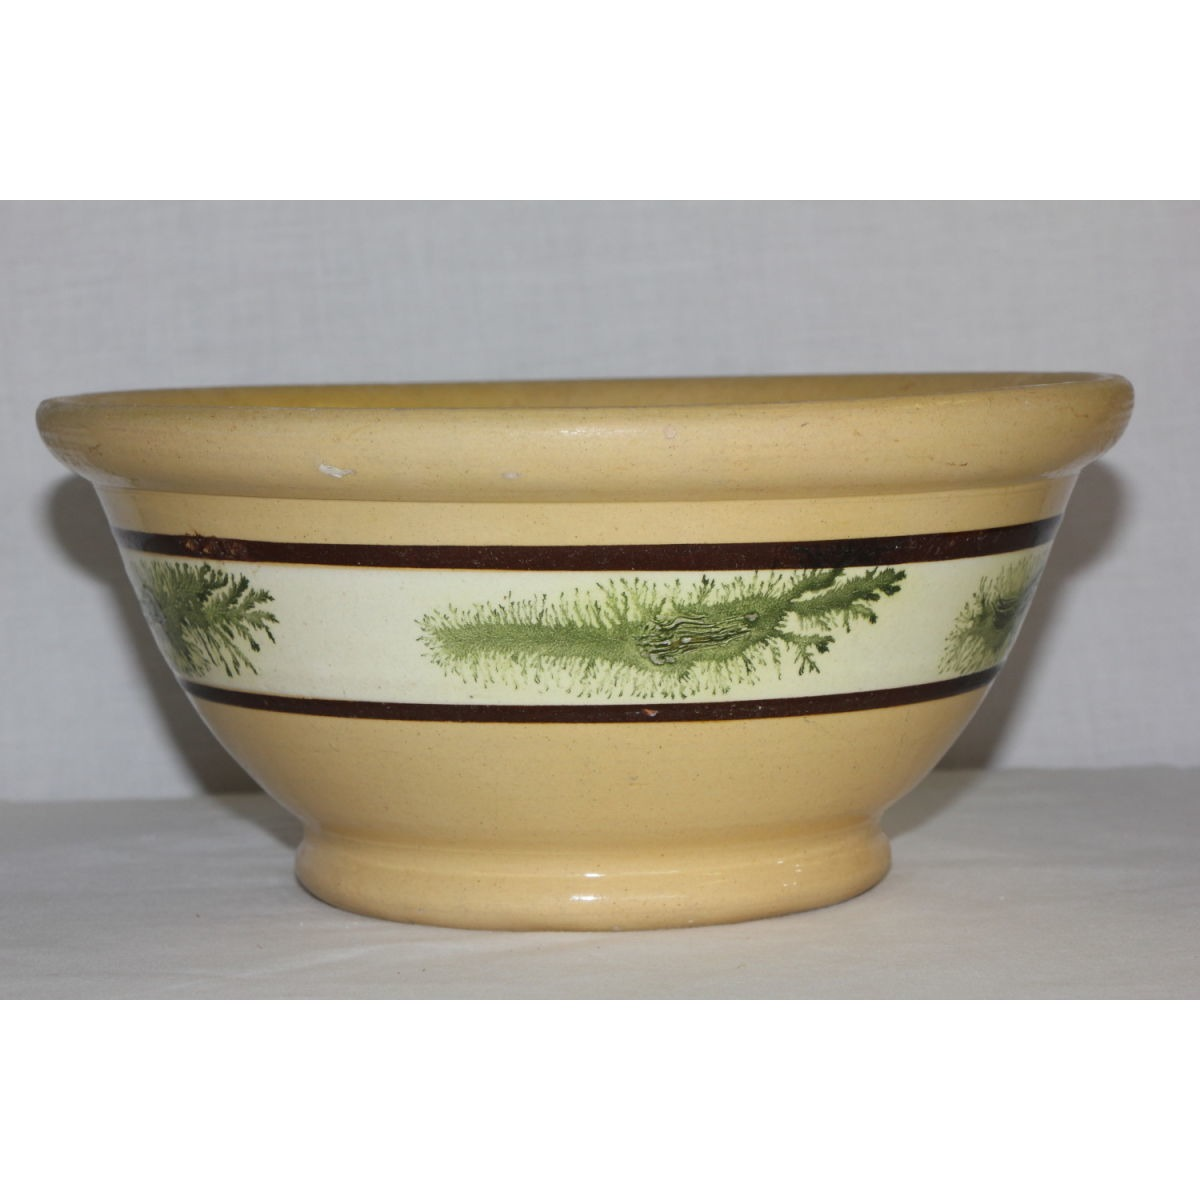 "Lovely Green Seaweed-Decorated 9"" Yellowware Bowl"